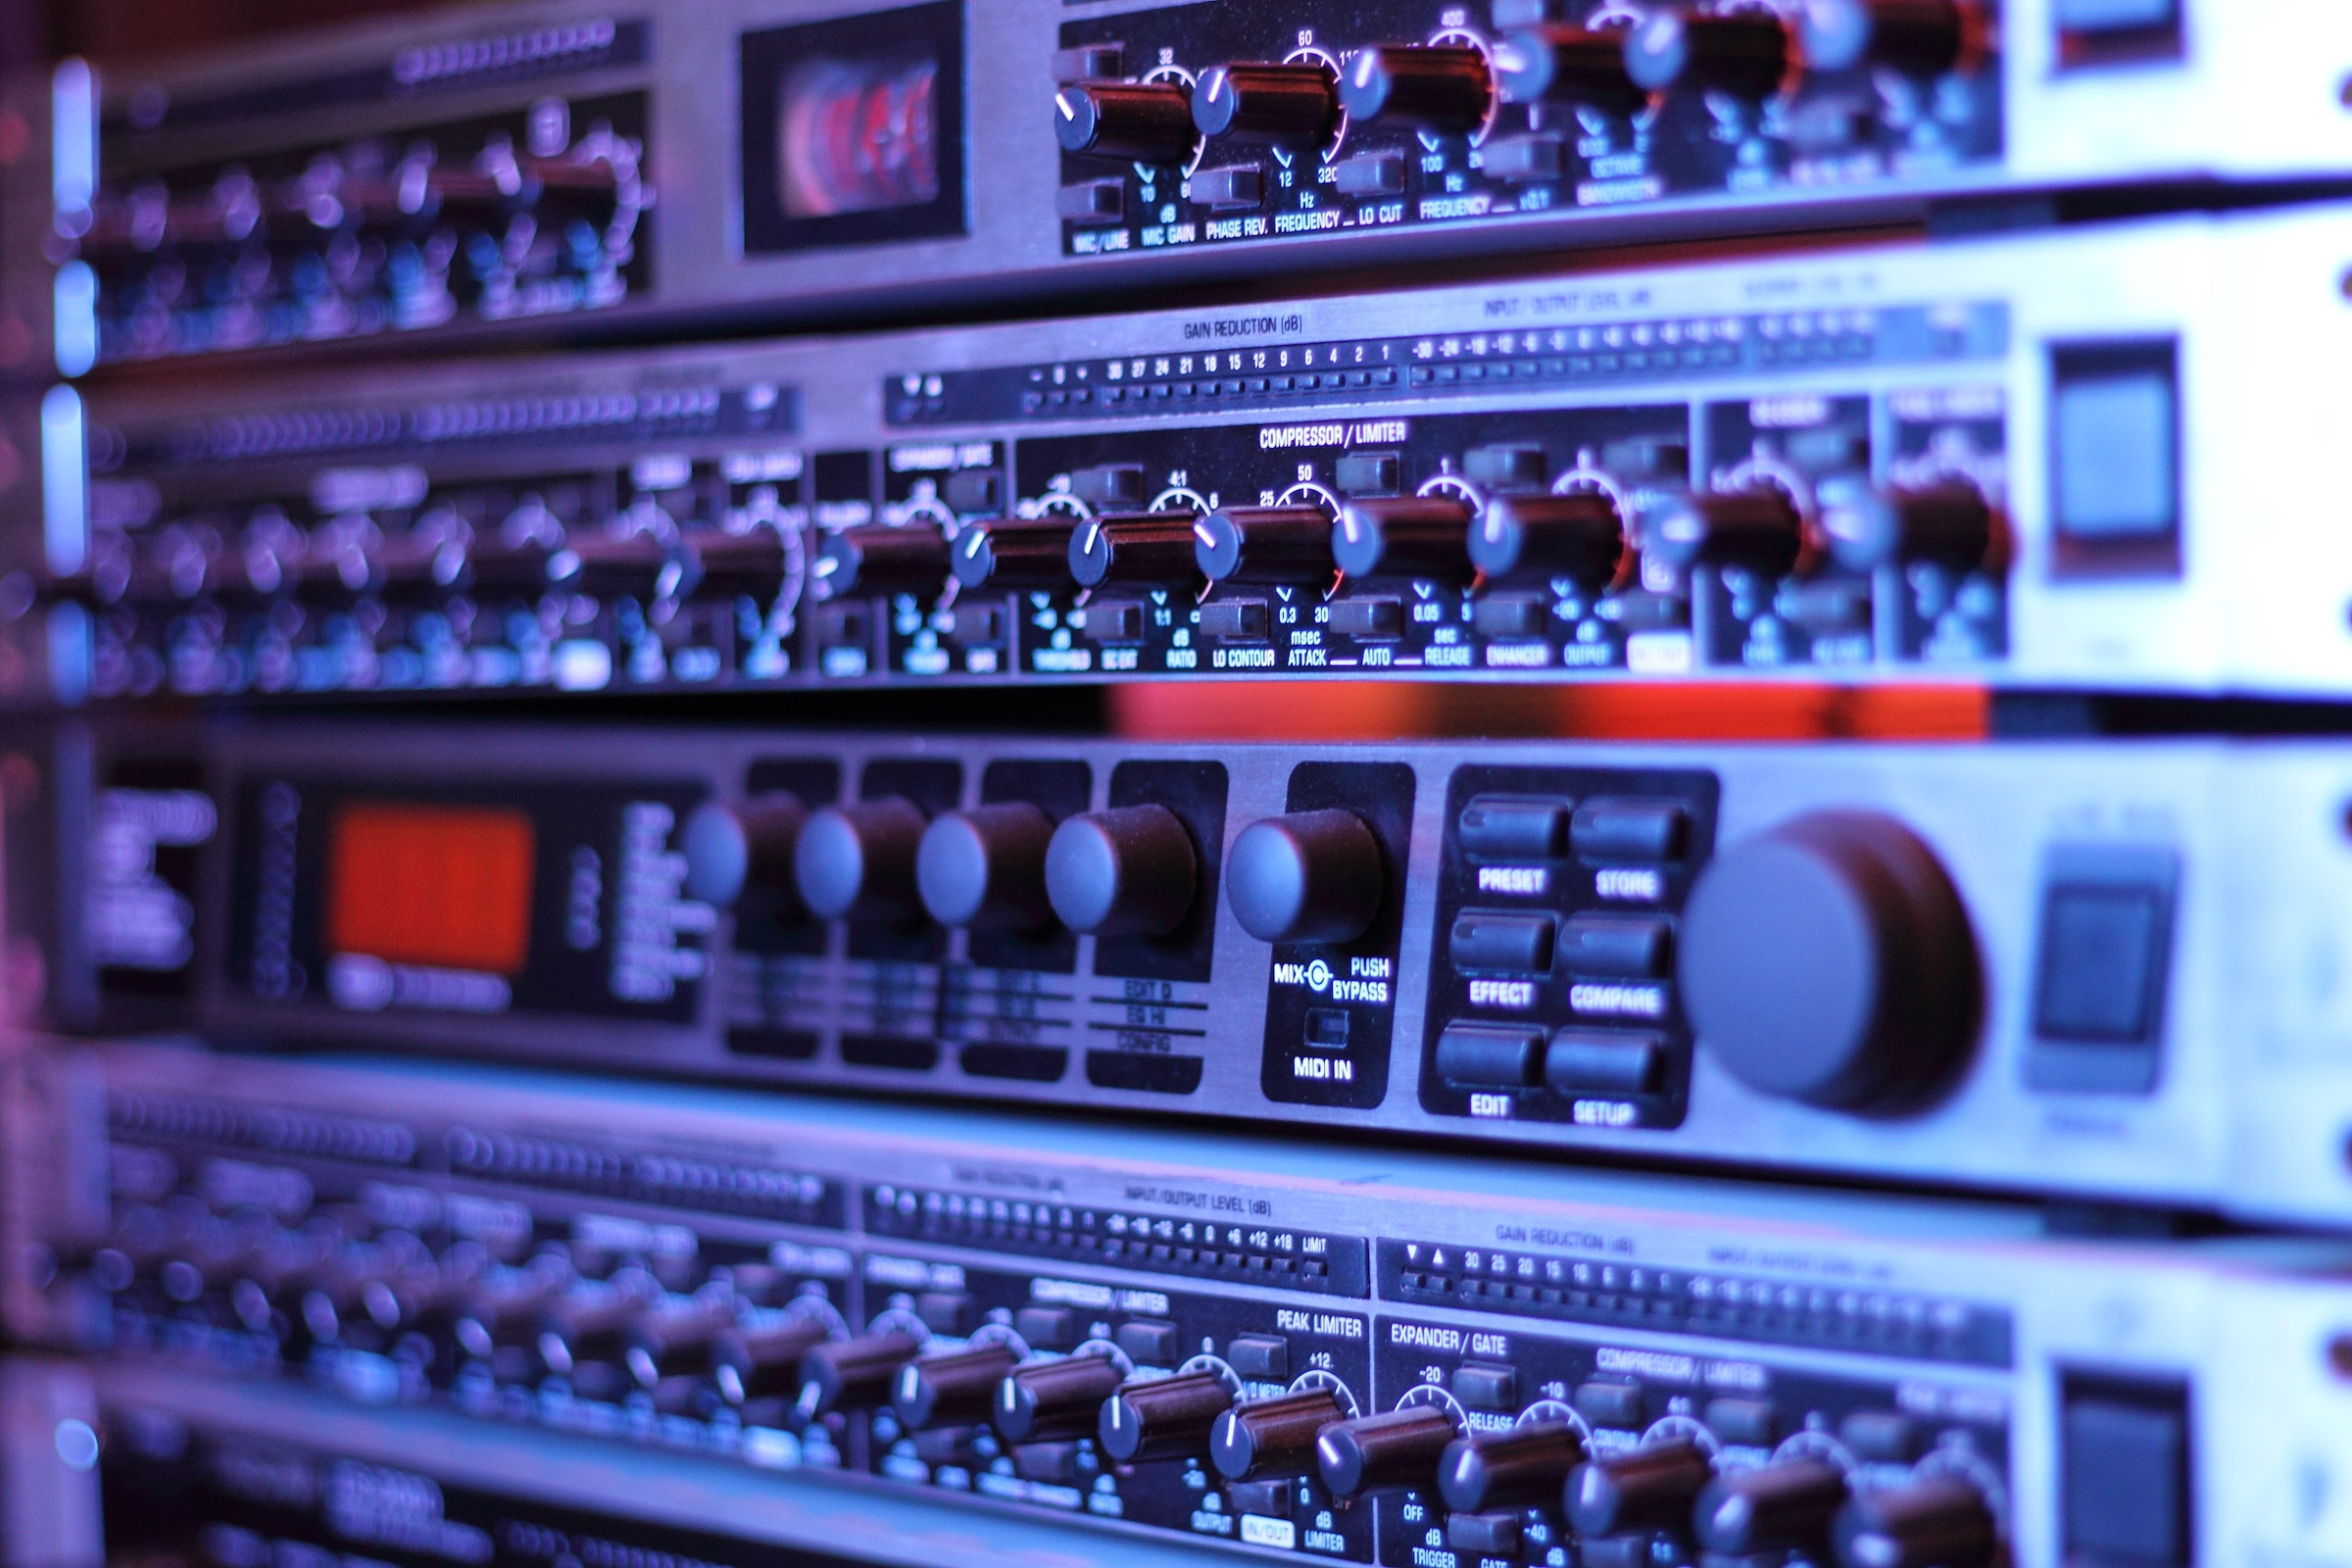 Audio Dynamics 101 Compressors Limiters Expanders And